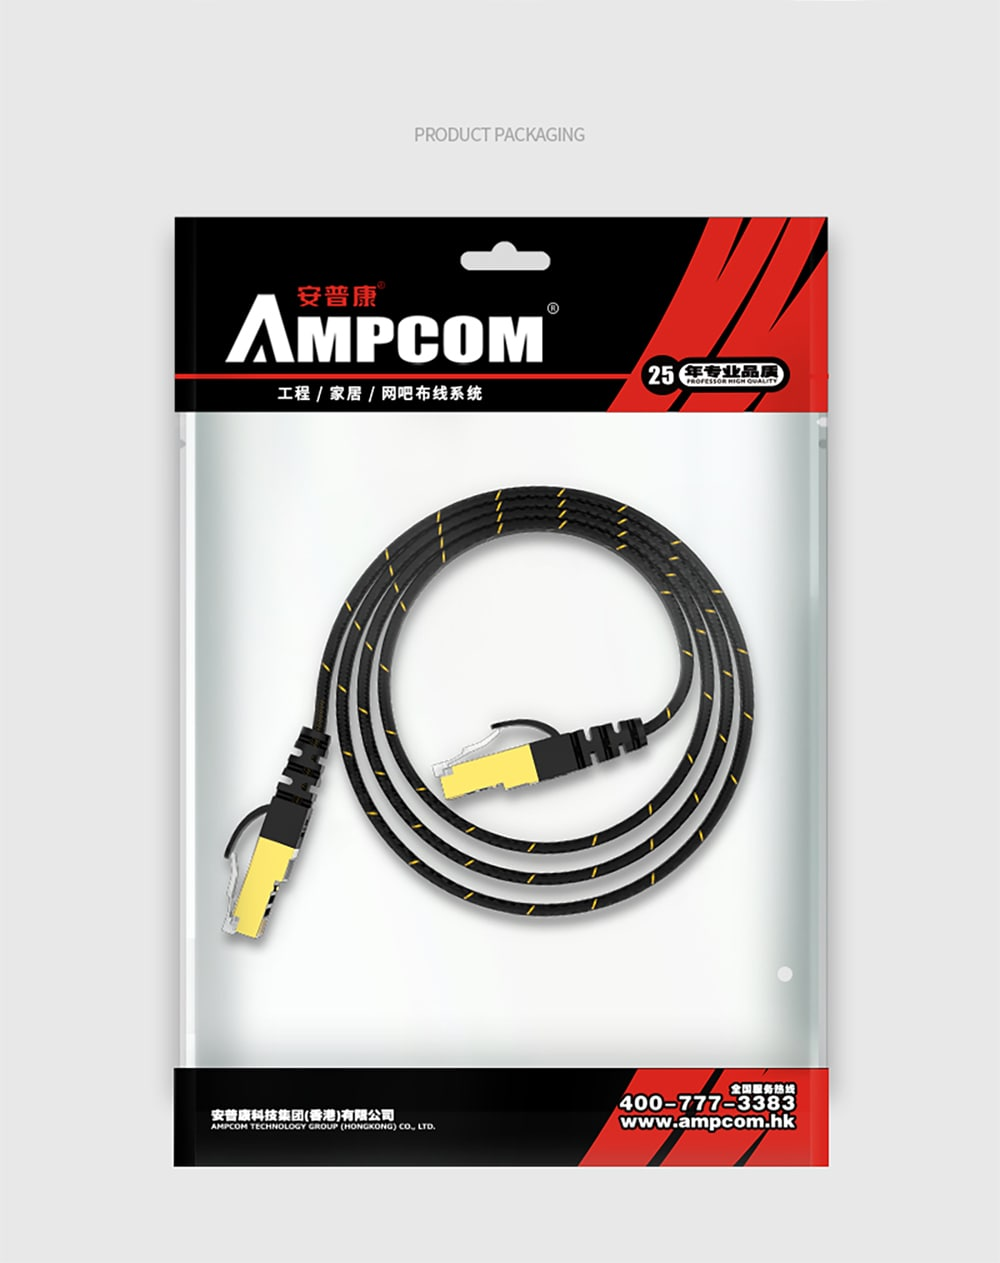 images/pc-audio-video-cable-connector-adapter/A451115721PB/ampcom-cat7-flat-ethernet-cable-stp-rj45-network-cable-10gbps-50u-milk-white-15m-plusbuyer_96.jpg